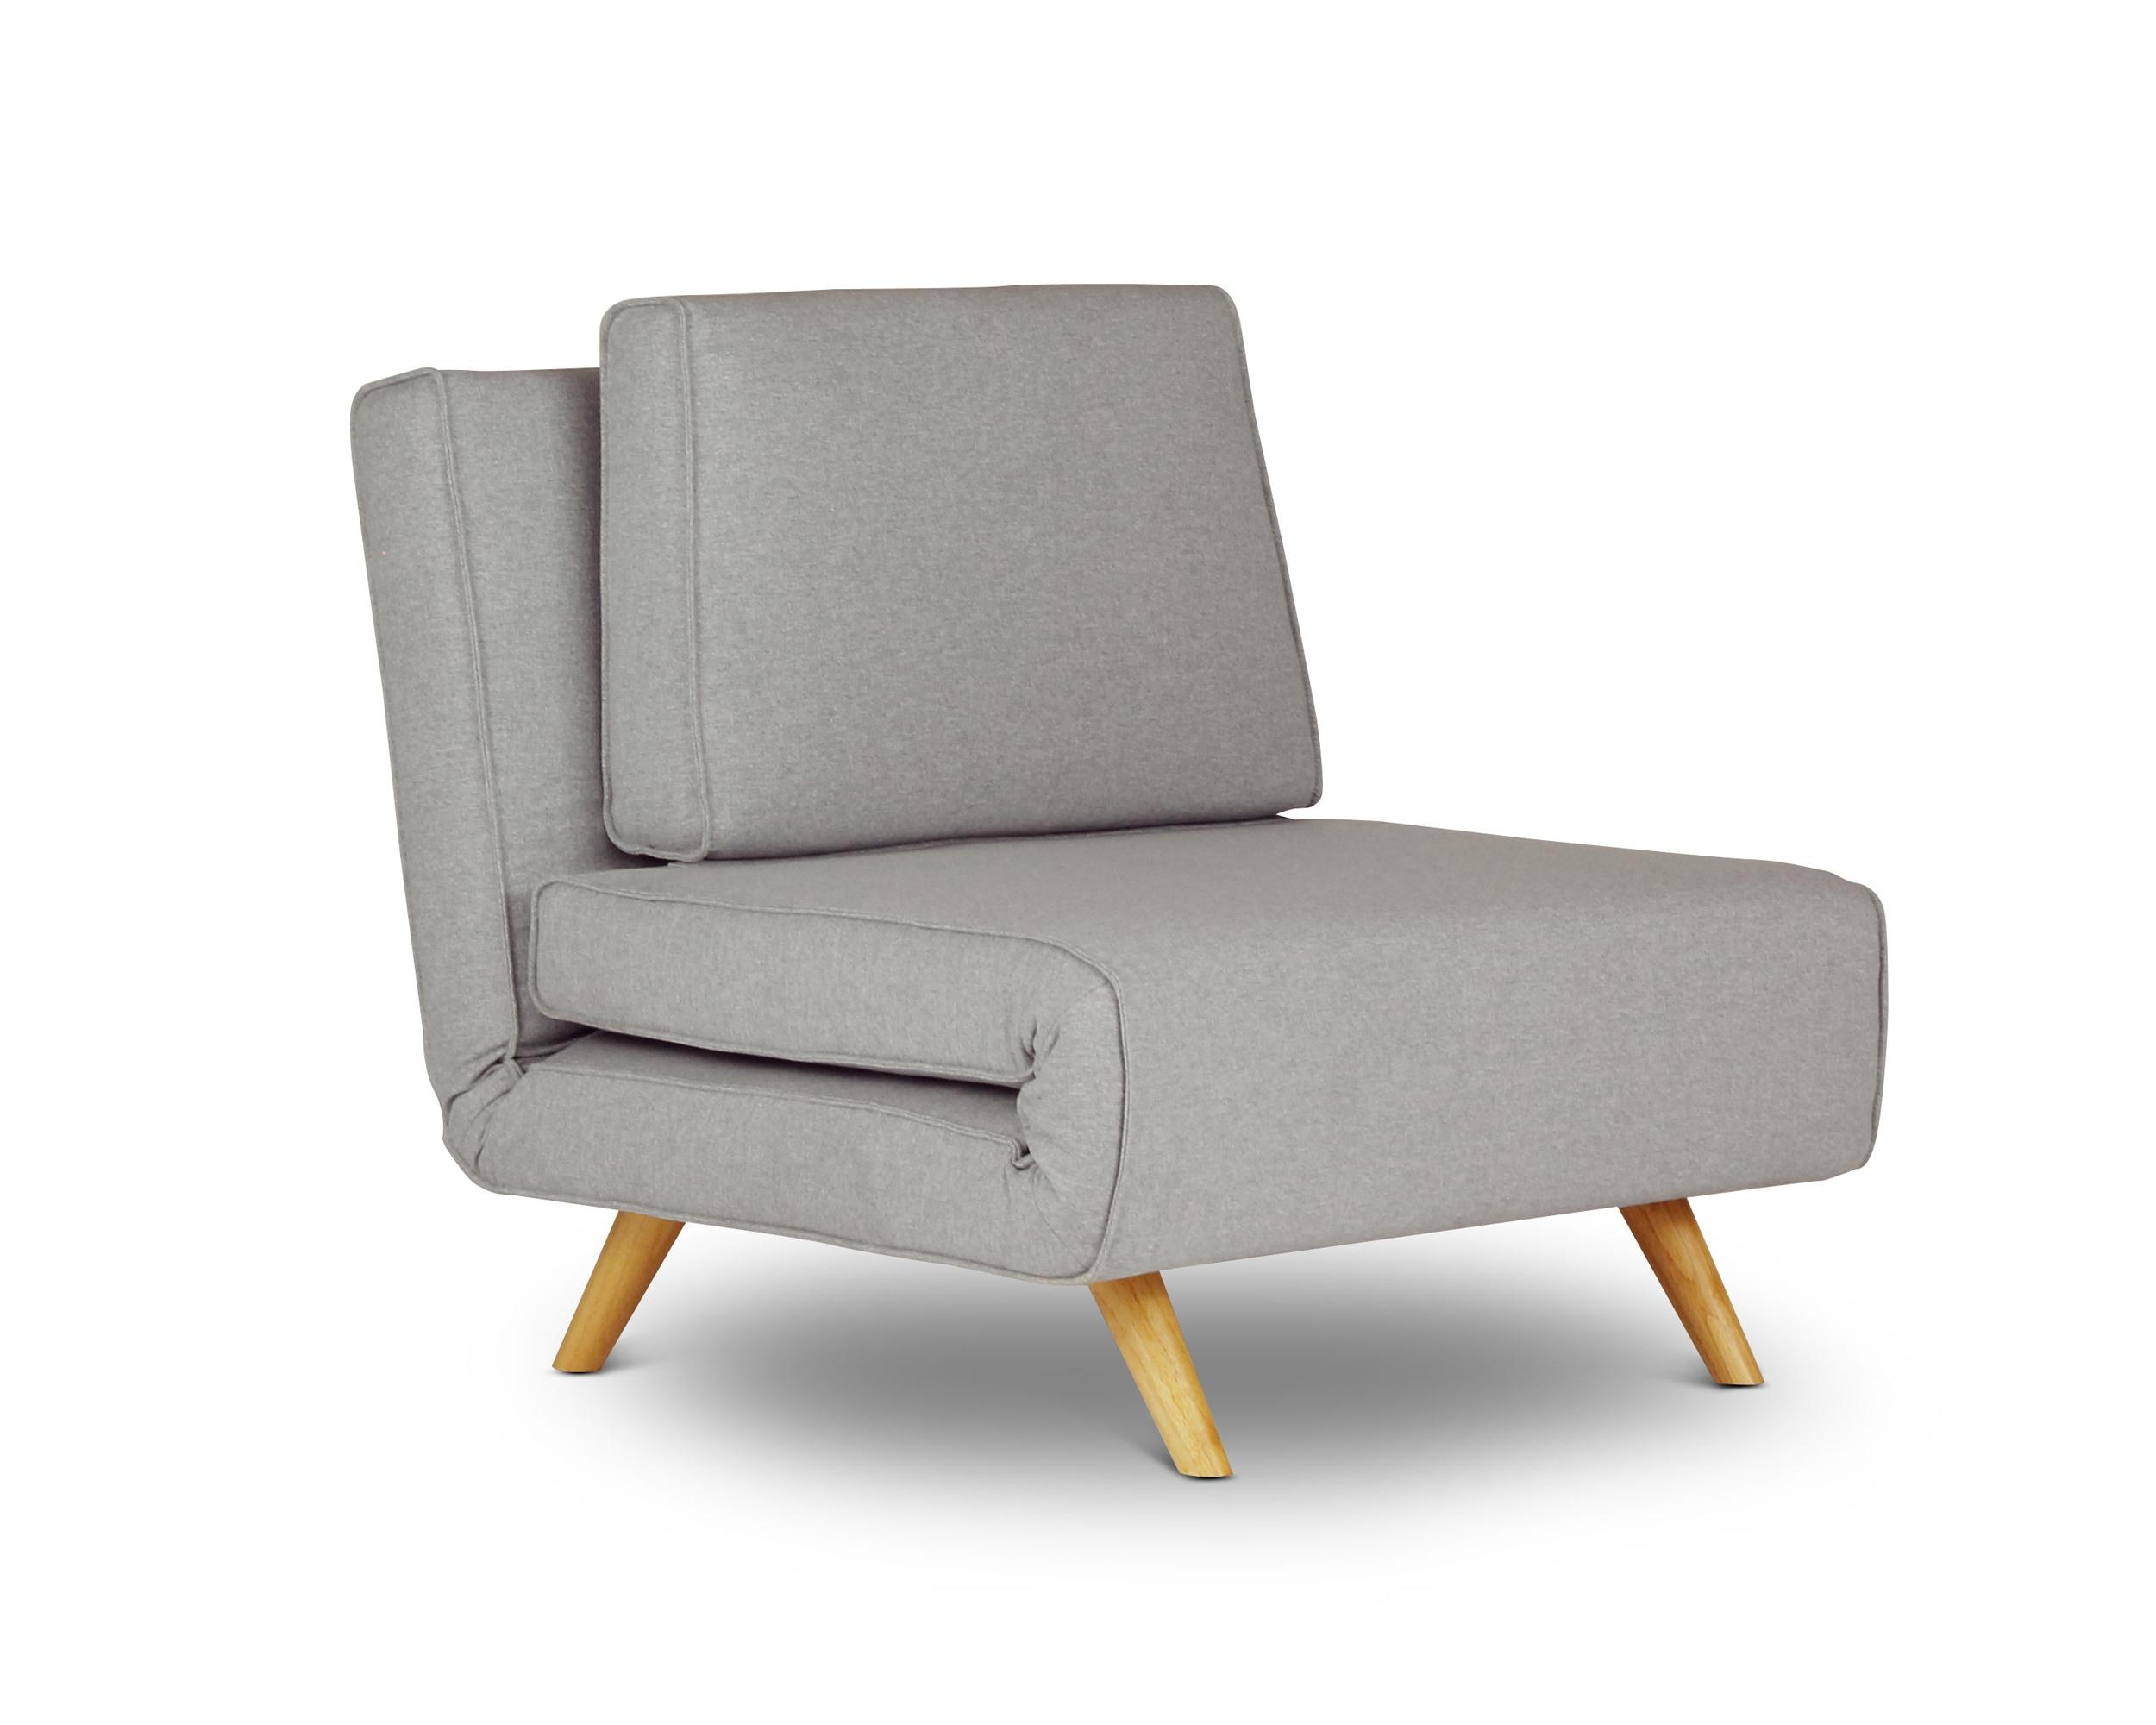 22 Best Collection of Single Chair Sofa Beds  Sofa Ideas